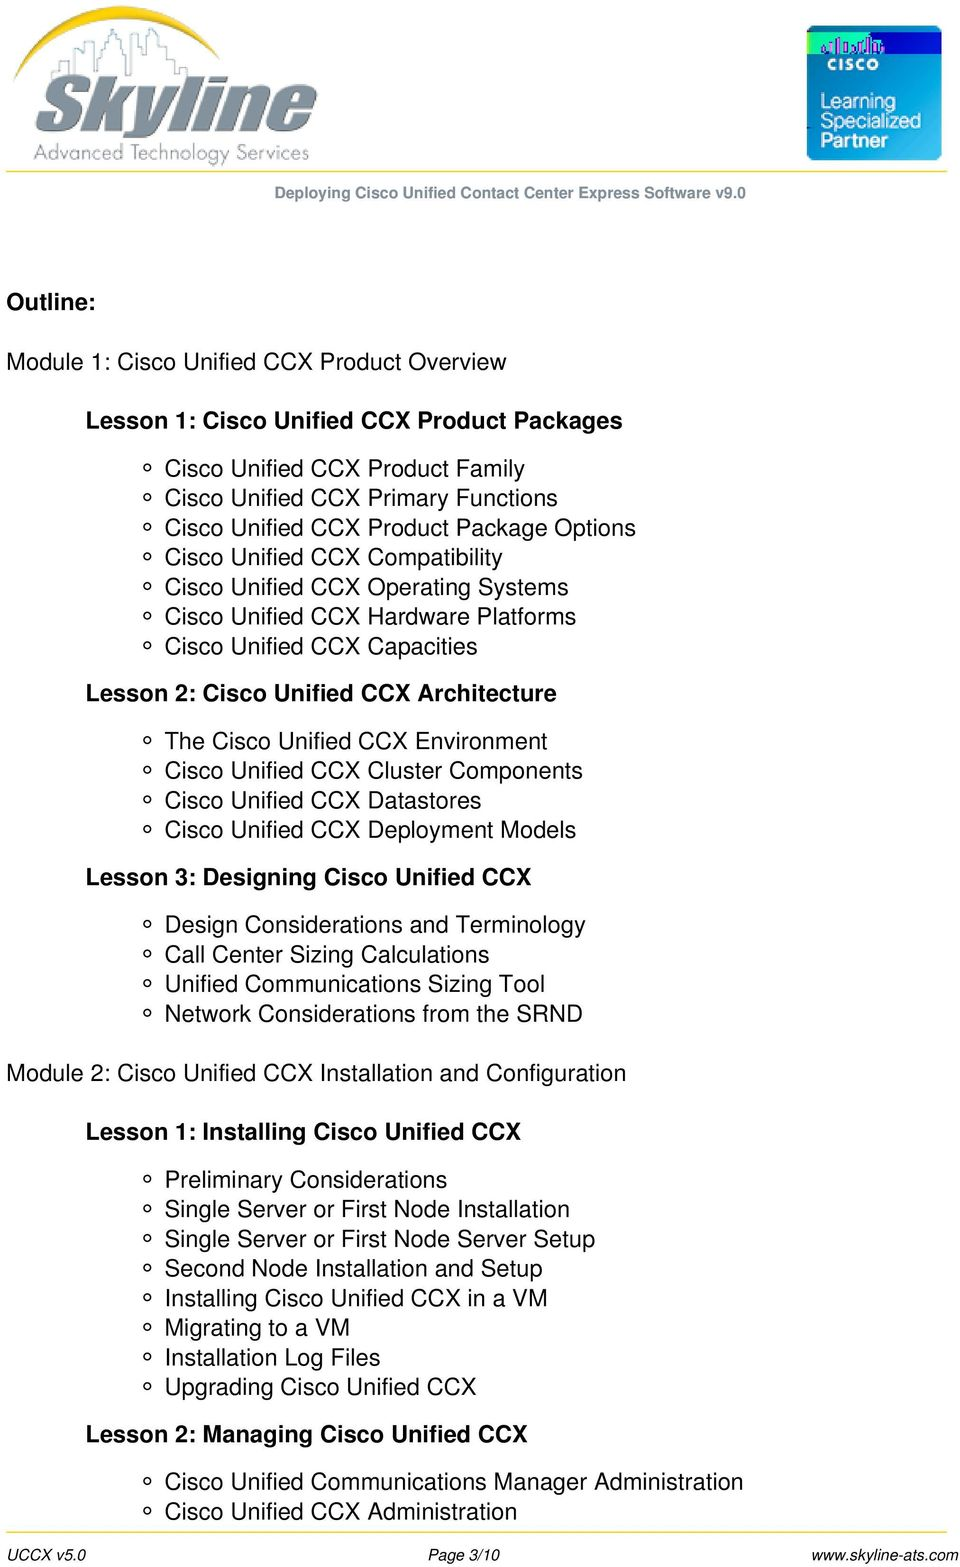 Cisco Unified CCX Environment Cisco Unified CCX Cluster Components Cisco Unified CCX Datastores Cisco Unified CCX Deployment Models Lesson 3: Designing Cisco Unified CCX Design Considerations and